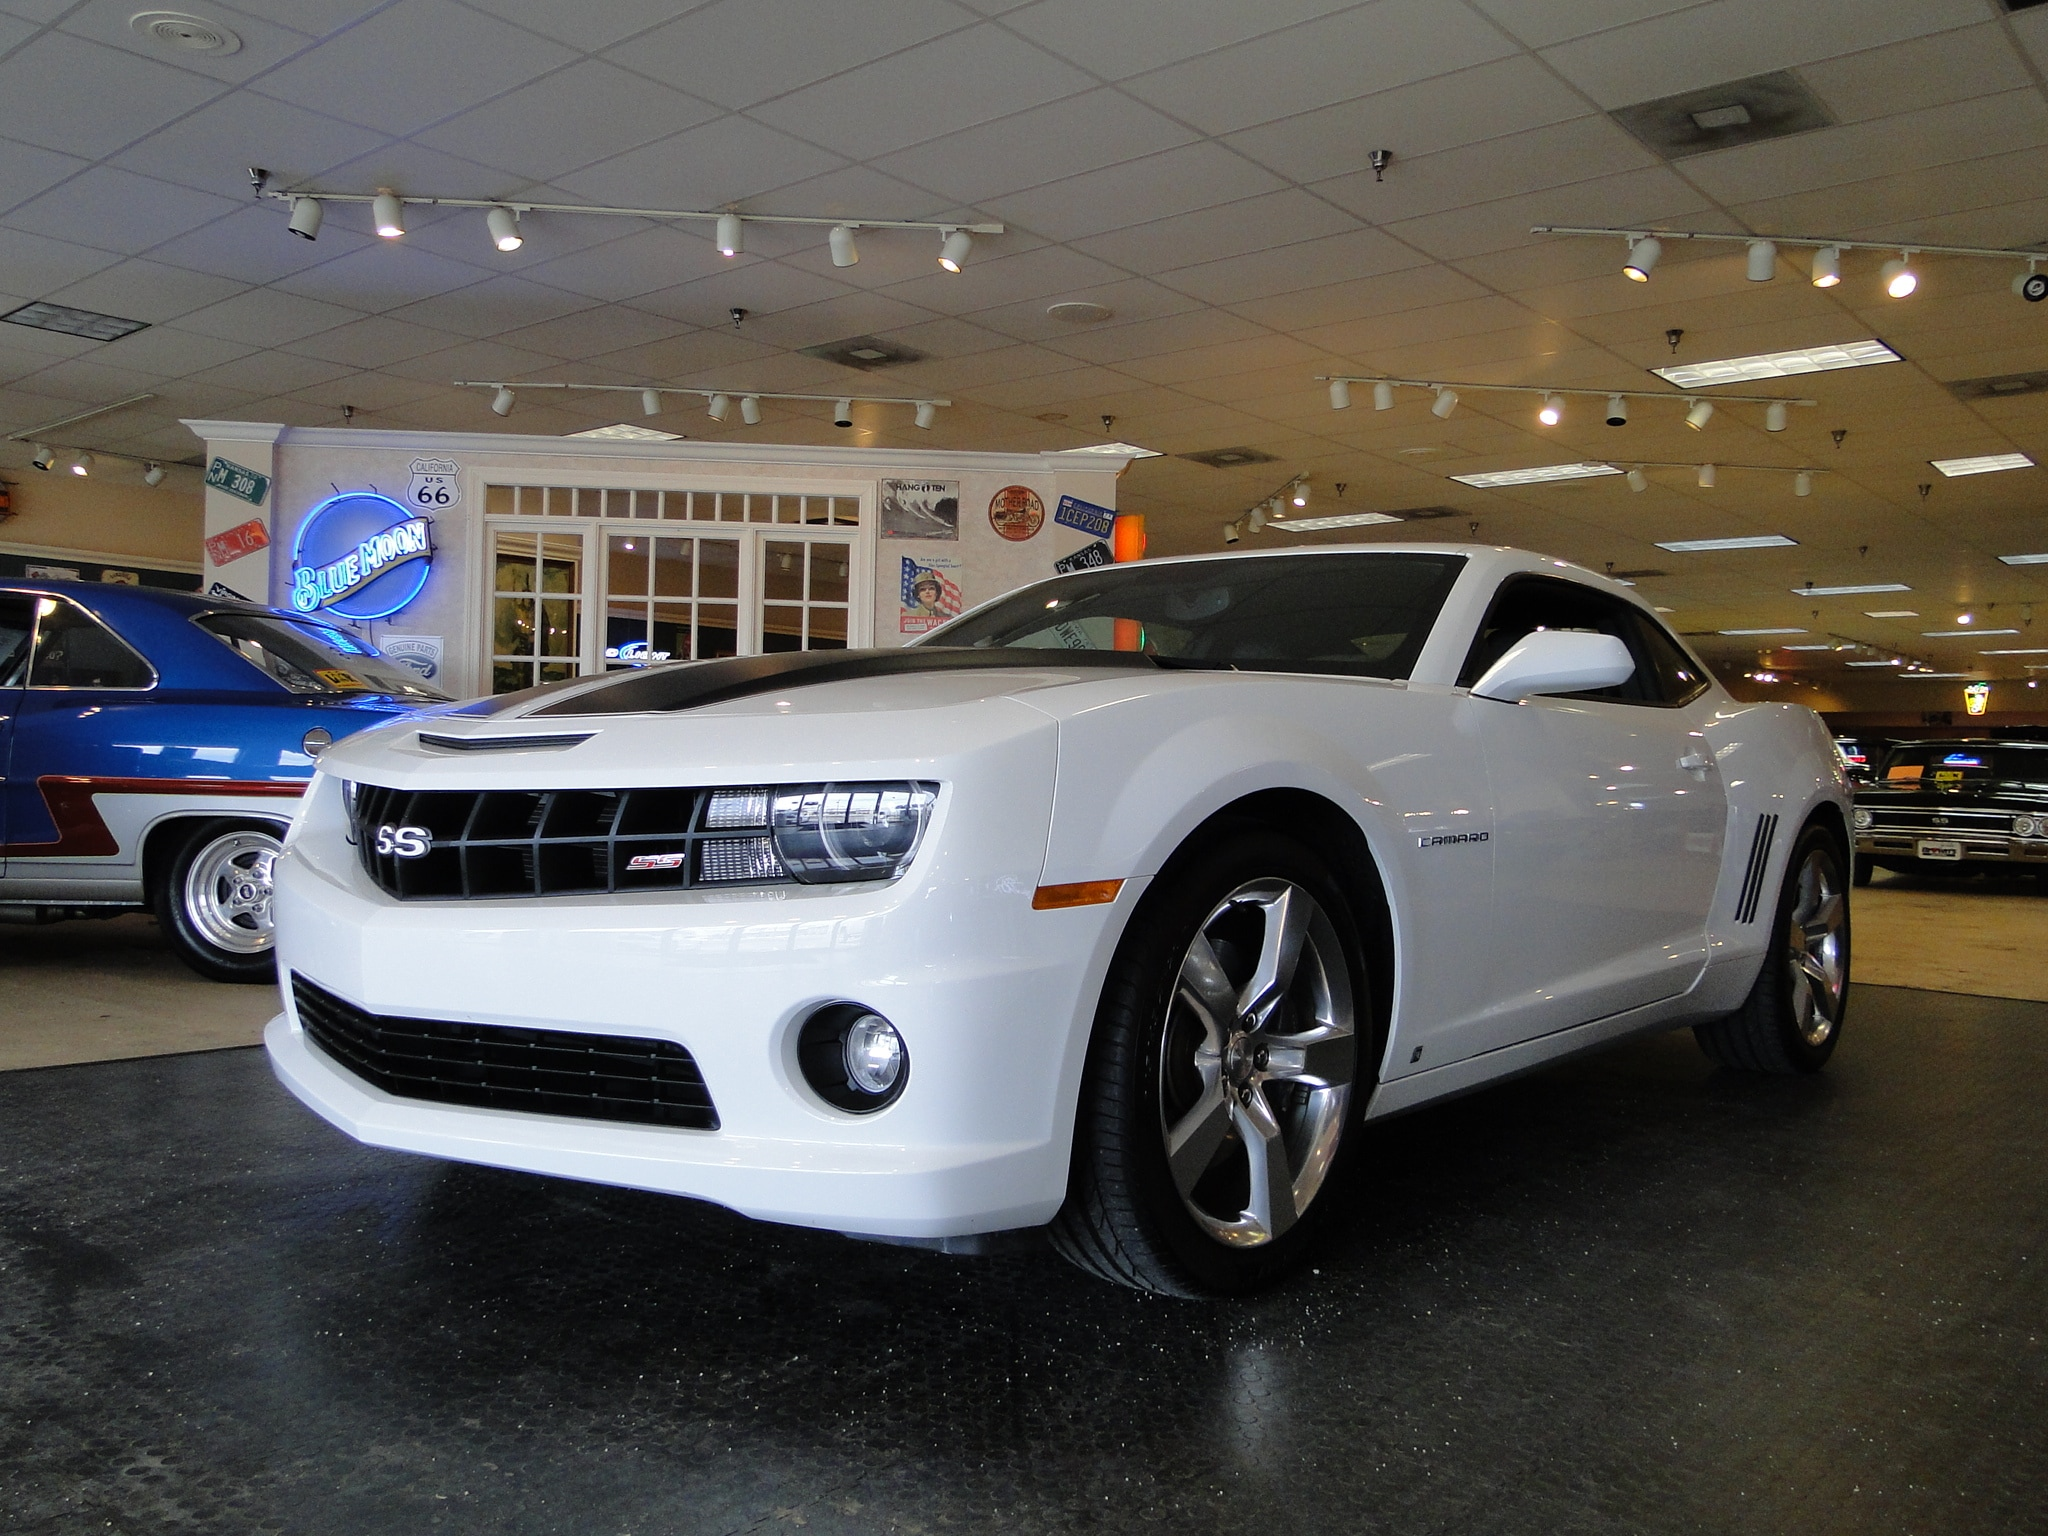 new 2010 chevrolet camaro rs 2ss glen burnie md. Black Bedroom Furniture Sets. Home Design Ideas